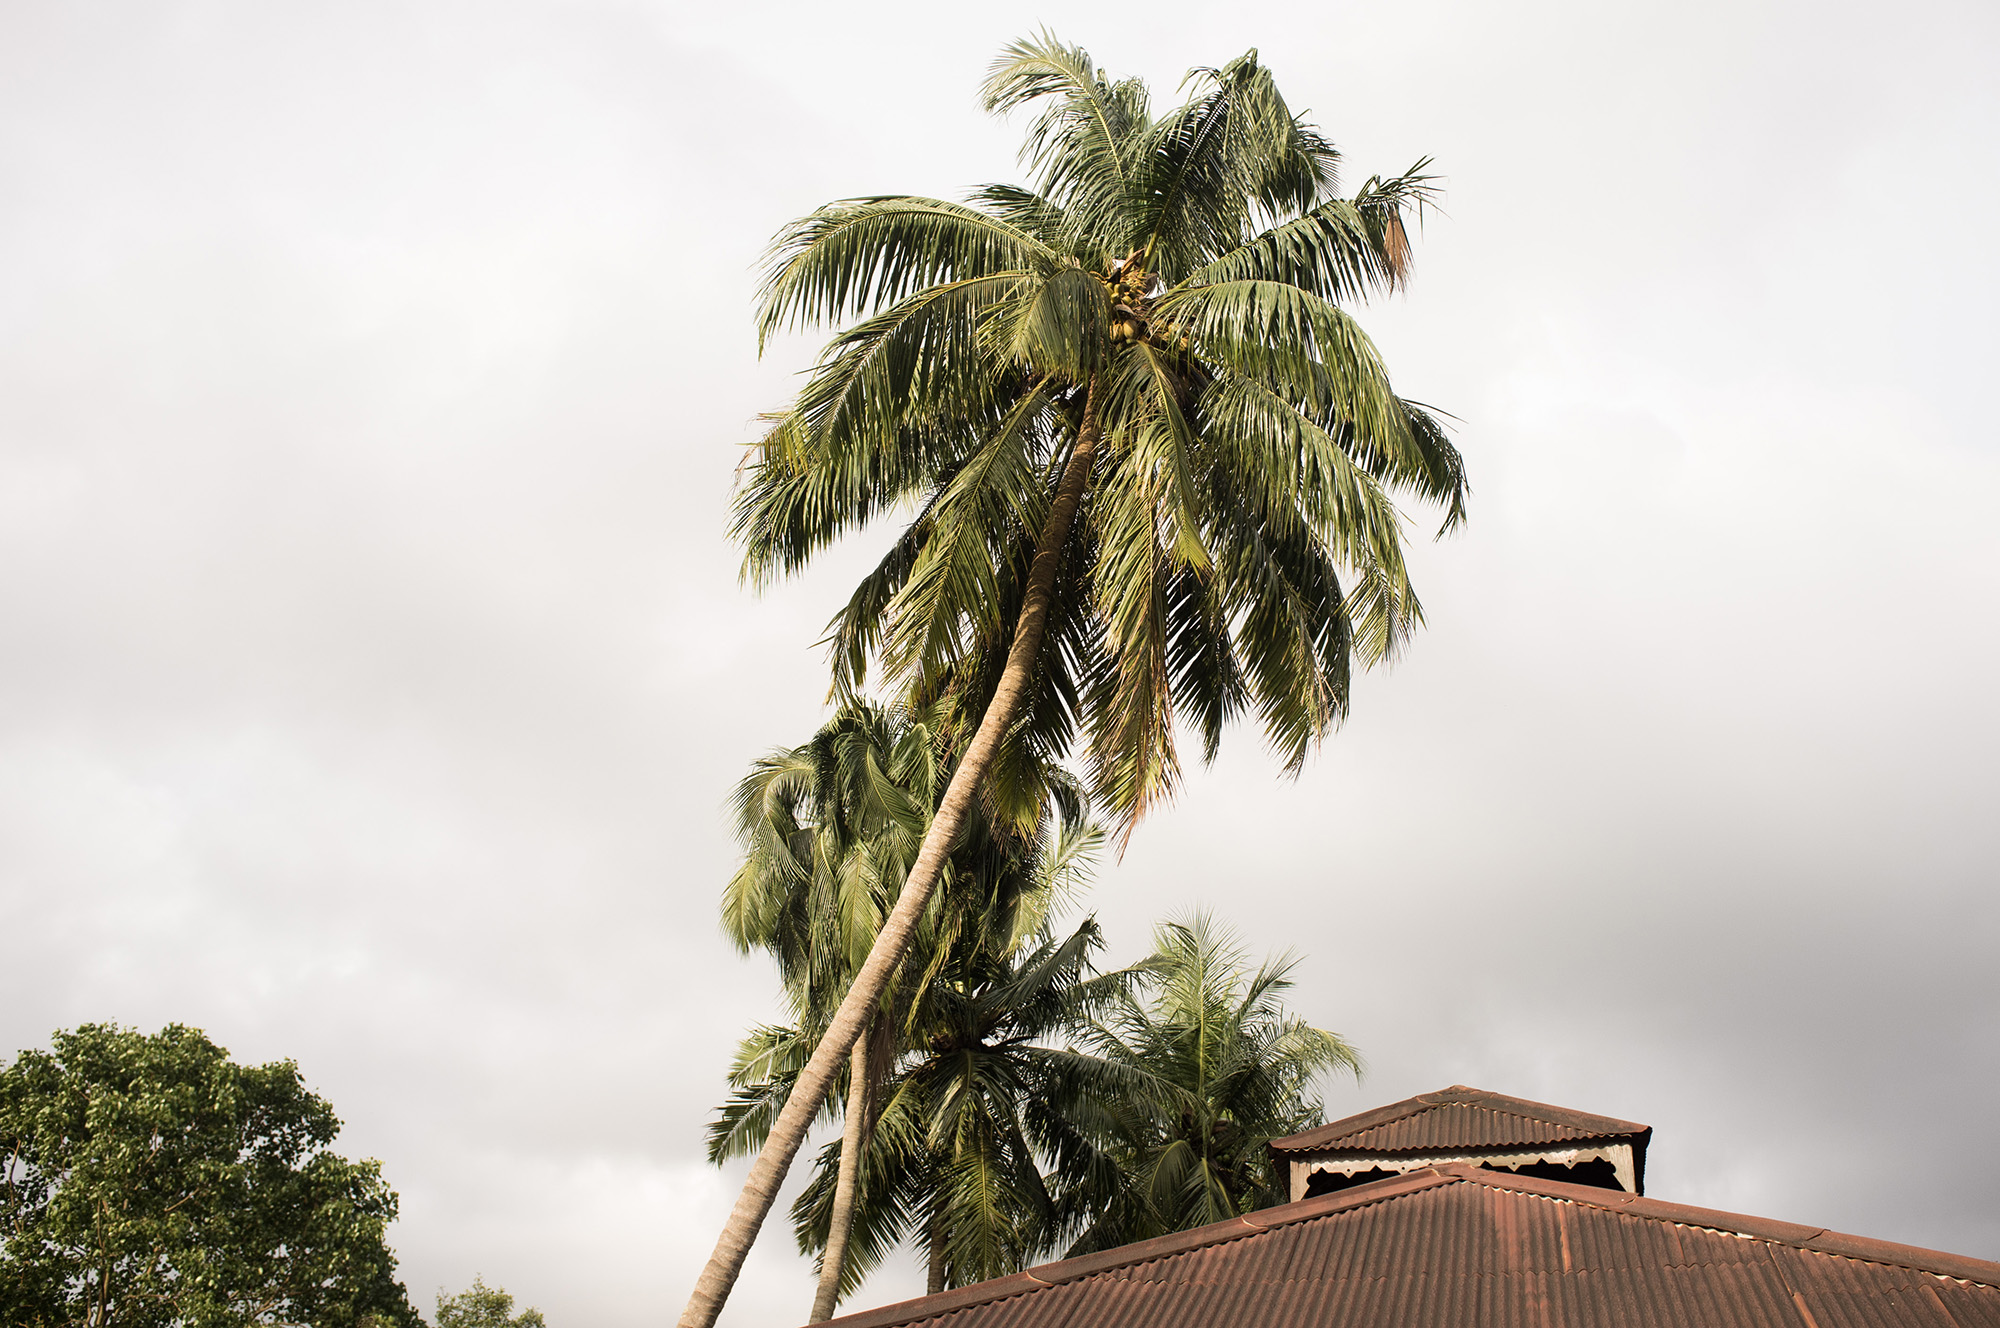 Leaning coconut palms.